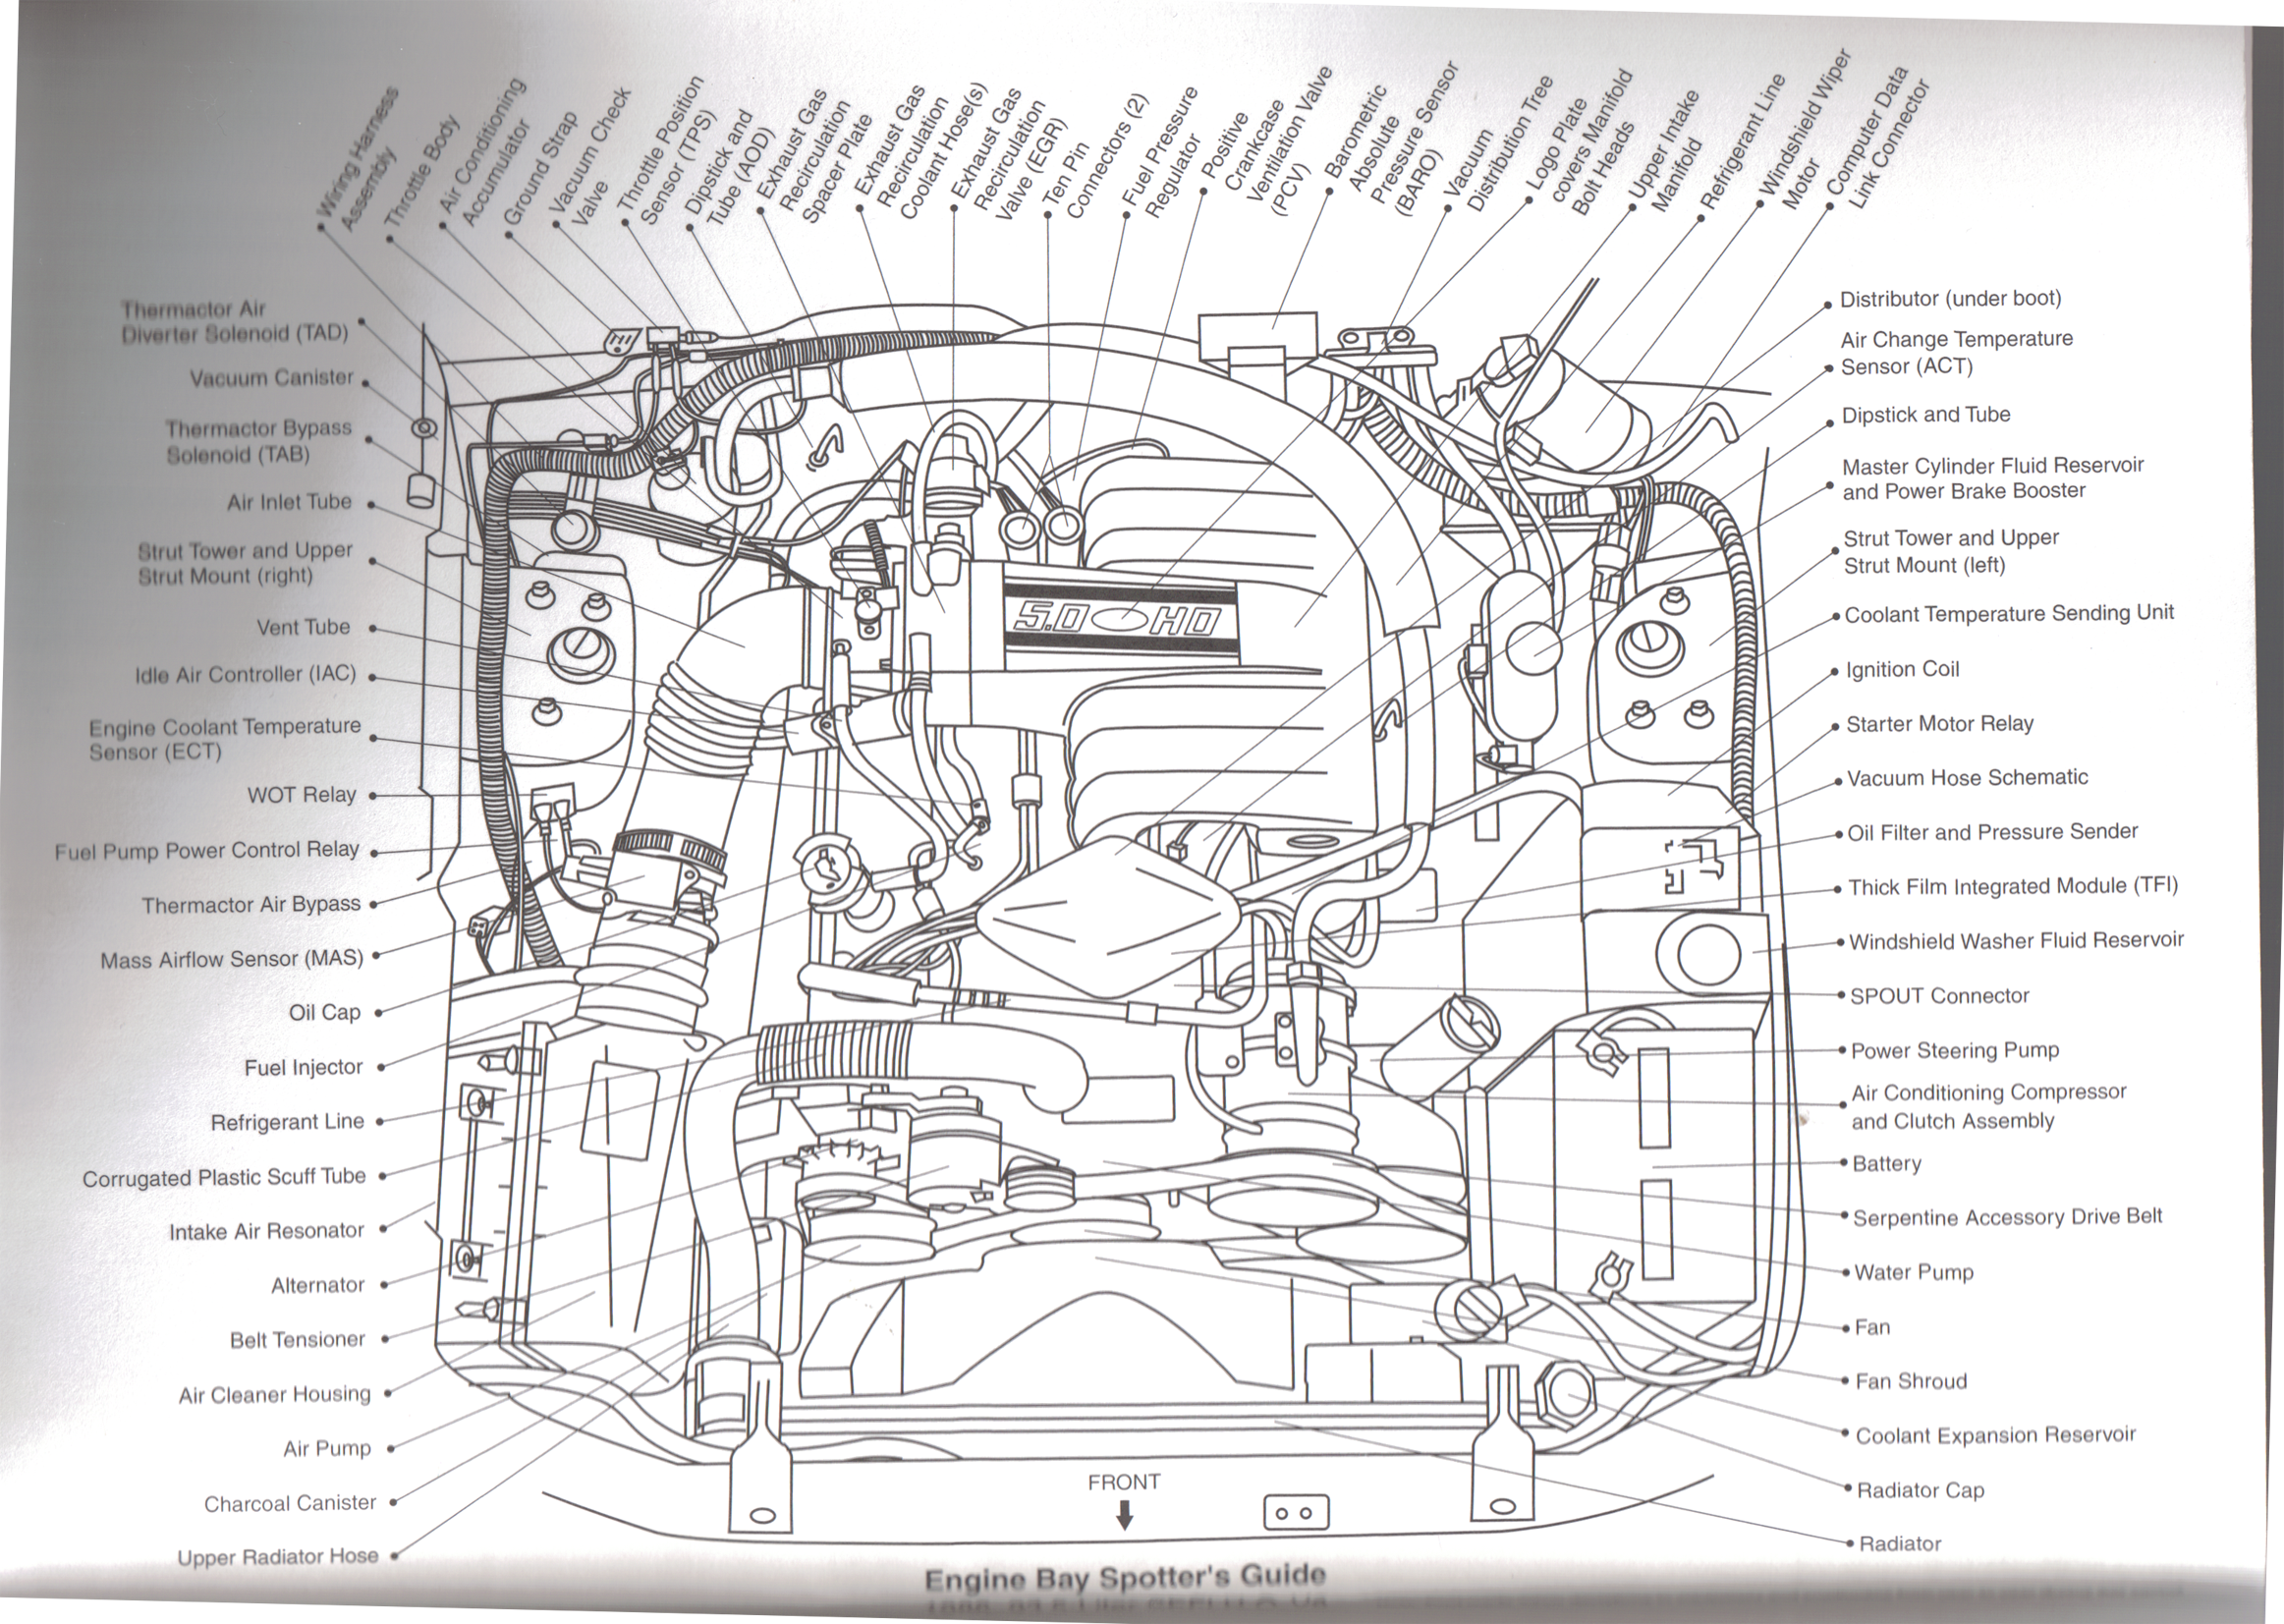 1987 1993 foxbody 5.0 sefi v8 engine part diagram everything you need to know about 1979 1993 foxbody mustangs 1986 mustang engine wiring harness at highcare.asia